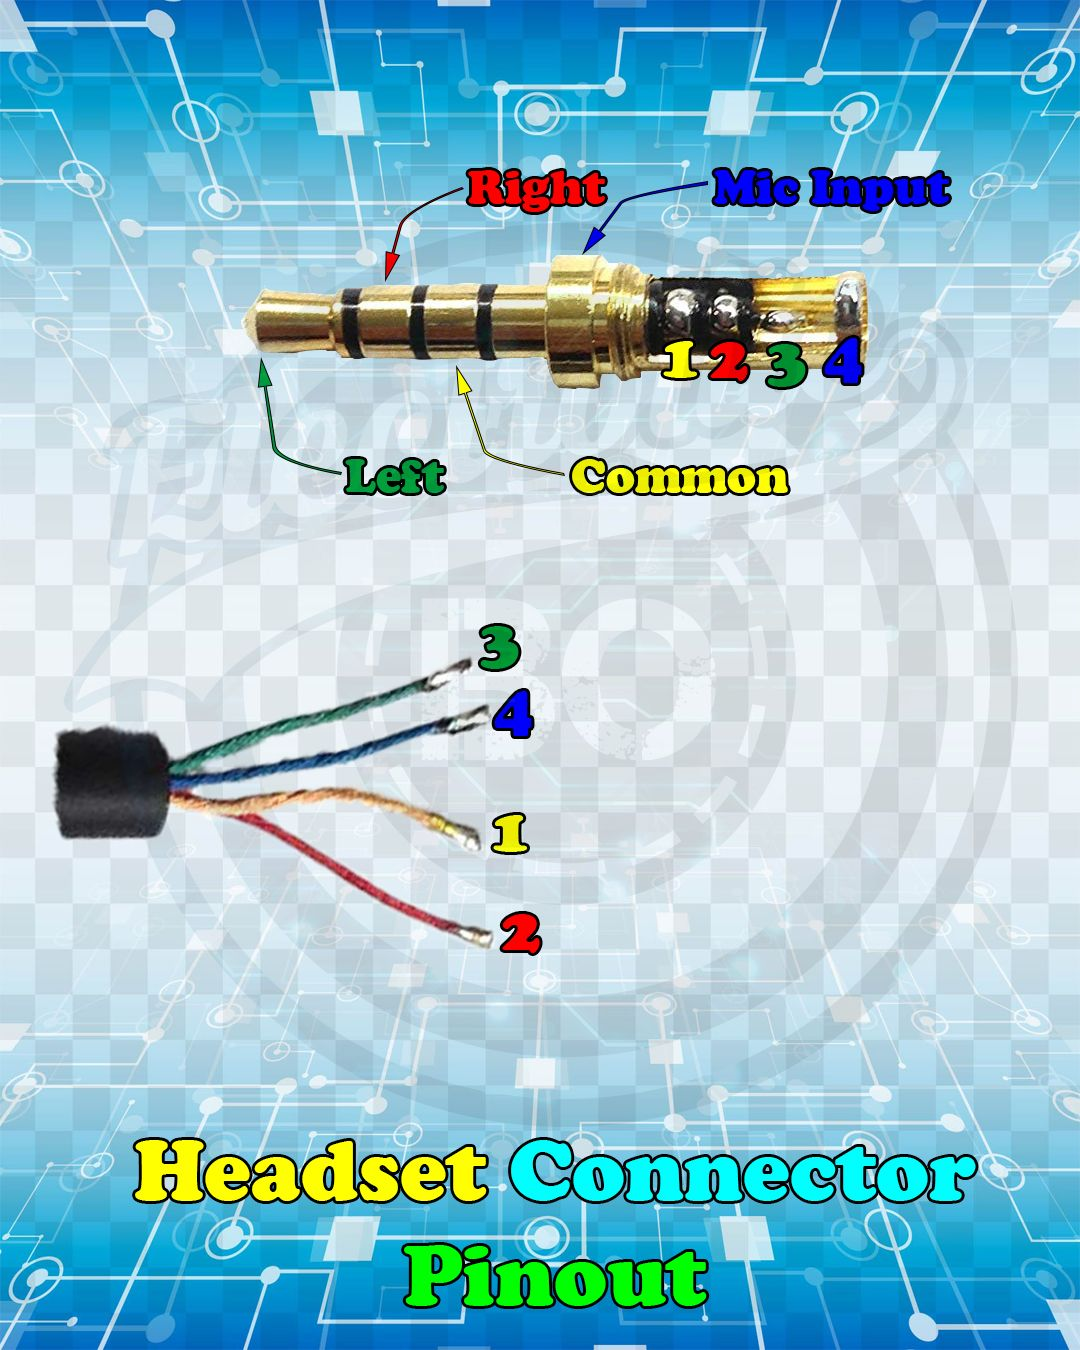 Headset Connector Pinout. (With images) Electronic